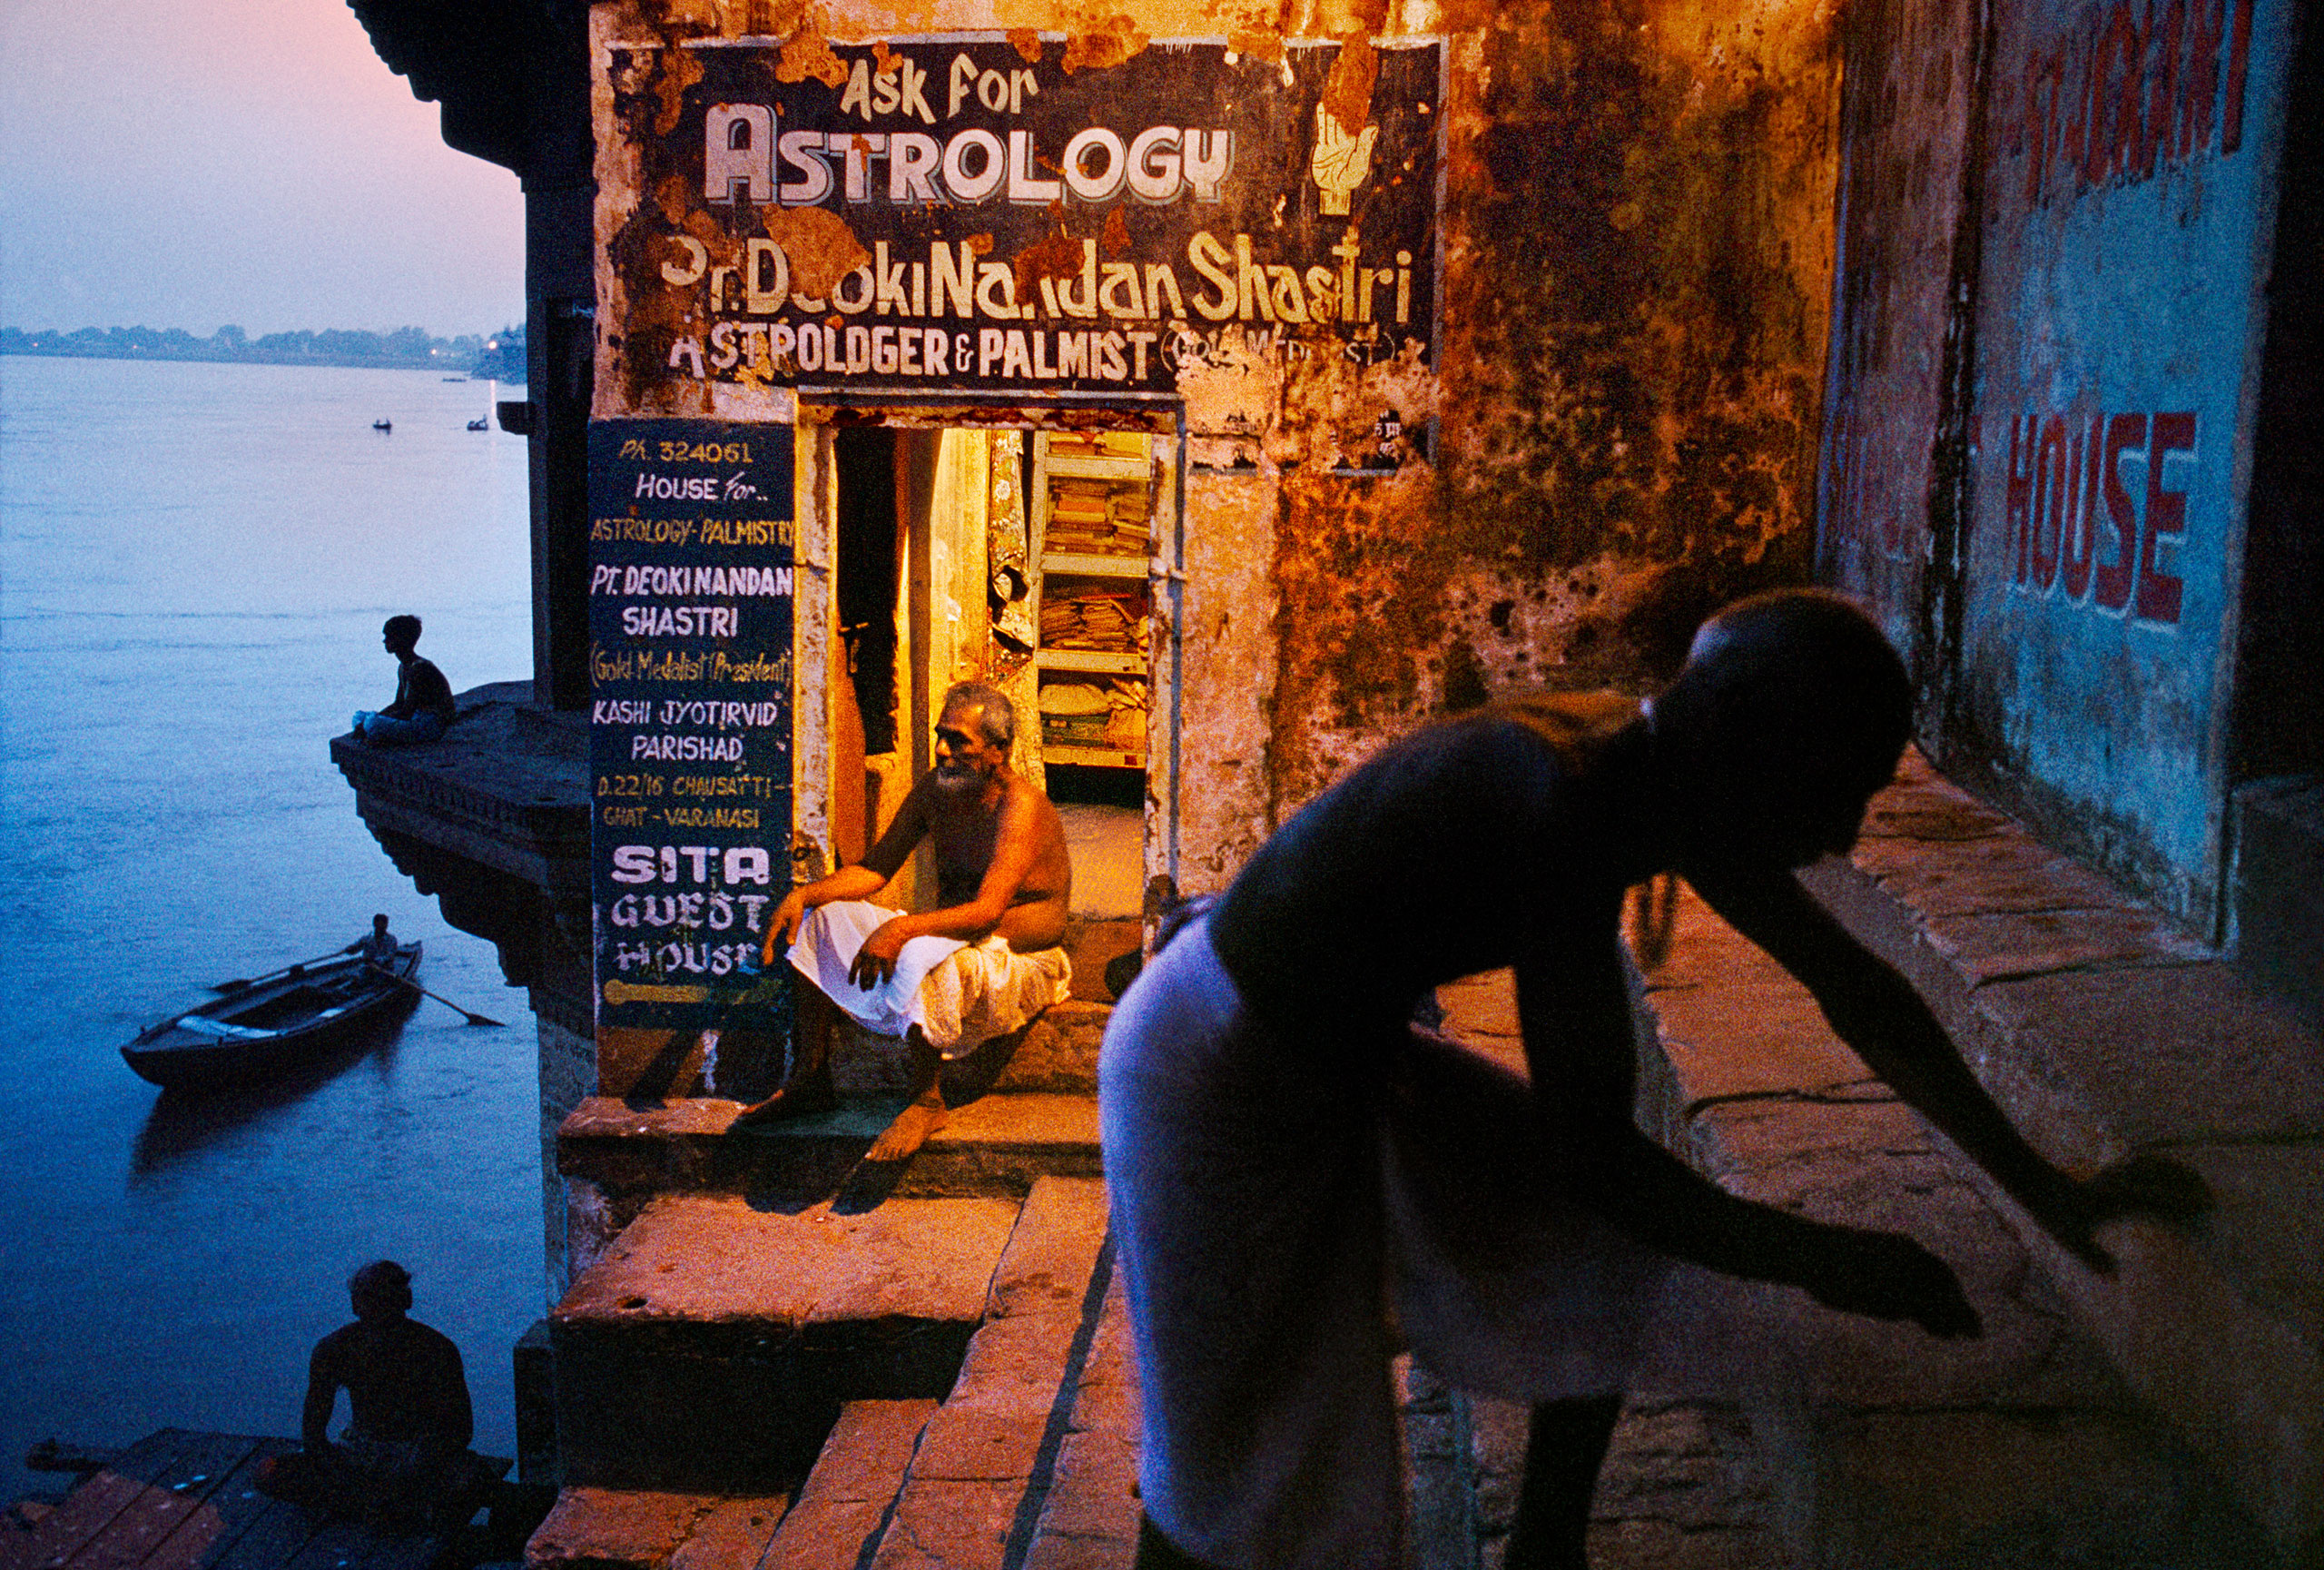 Hindu pilgrims visit shrines and ghats along the River Ganges.                               Varanasi, Uttar Pradesh, 1996